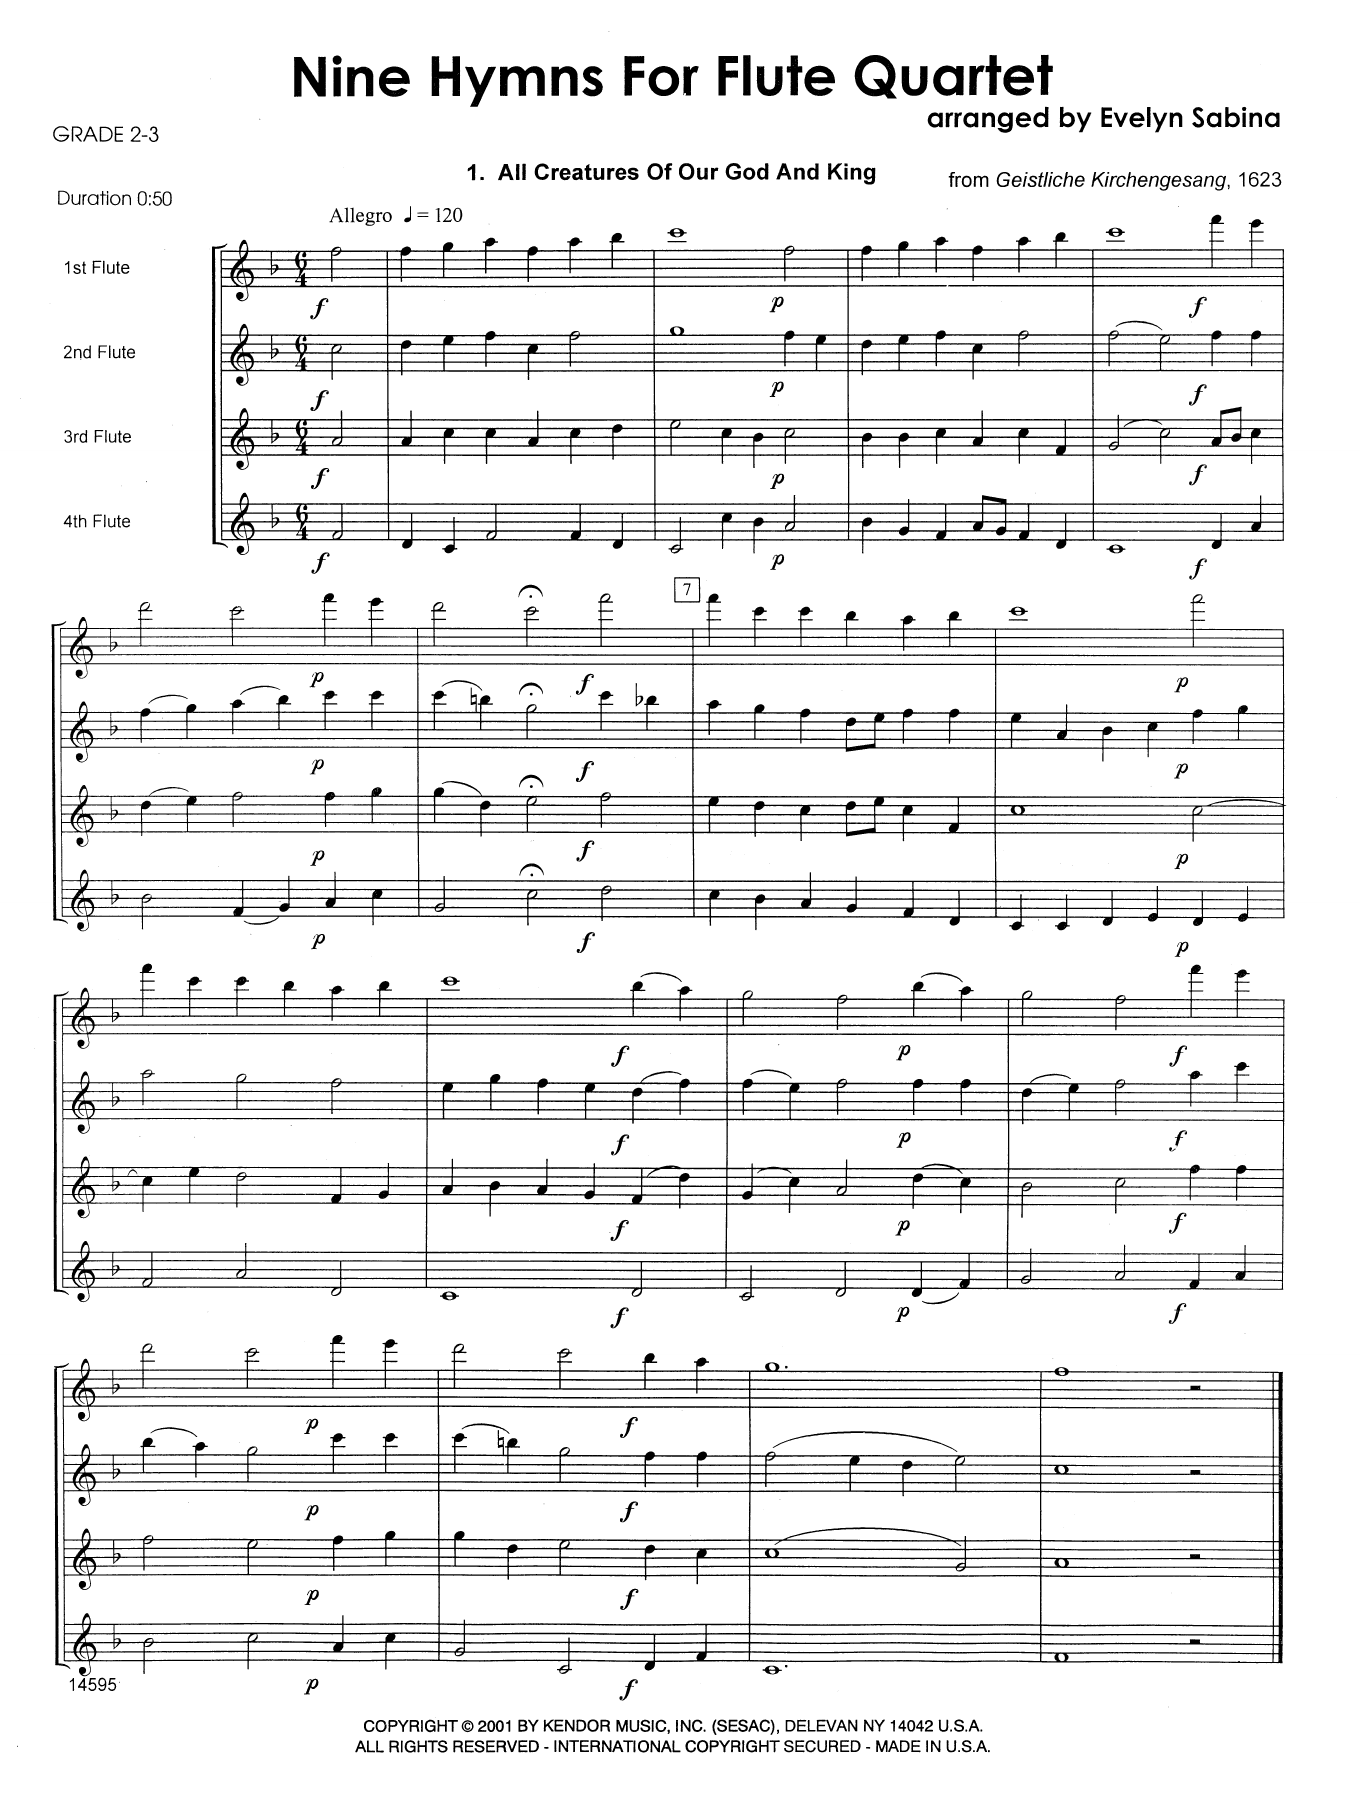 Nine Hymns For Flute Quartet (COMPLETE) sheet music for flute quartet by Evelyn Sabina and Miscellaneous. Score Image Preview.